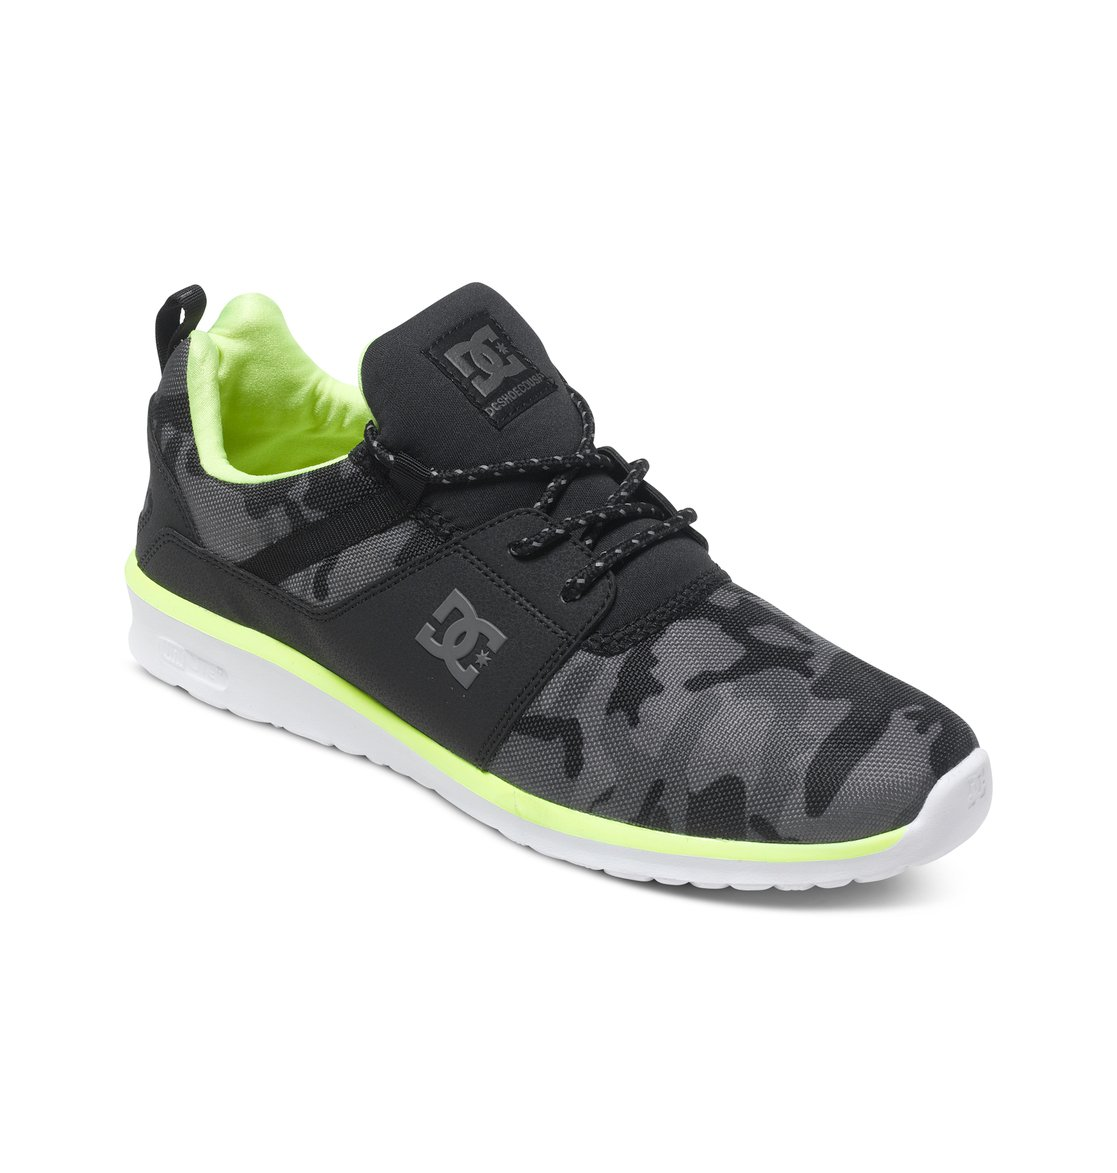 Online shoes for women. Dc shoes for sale online